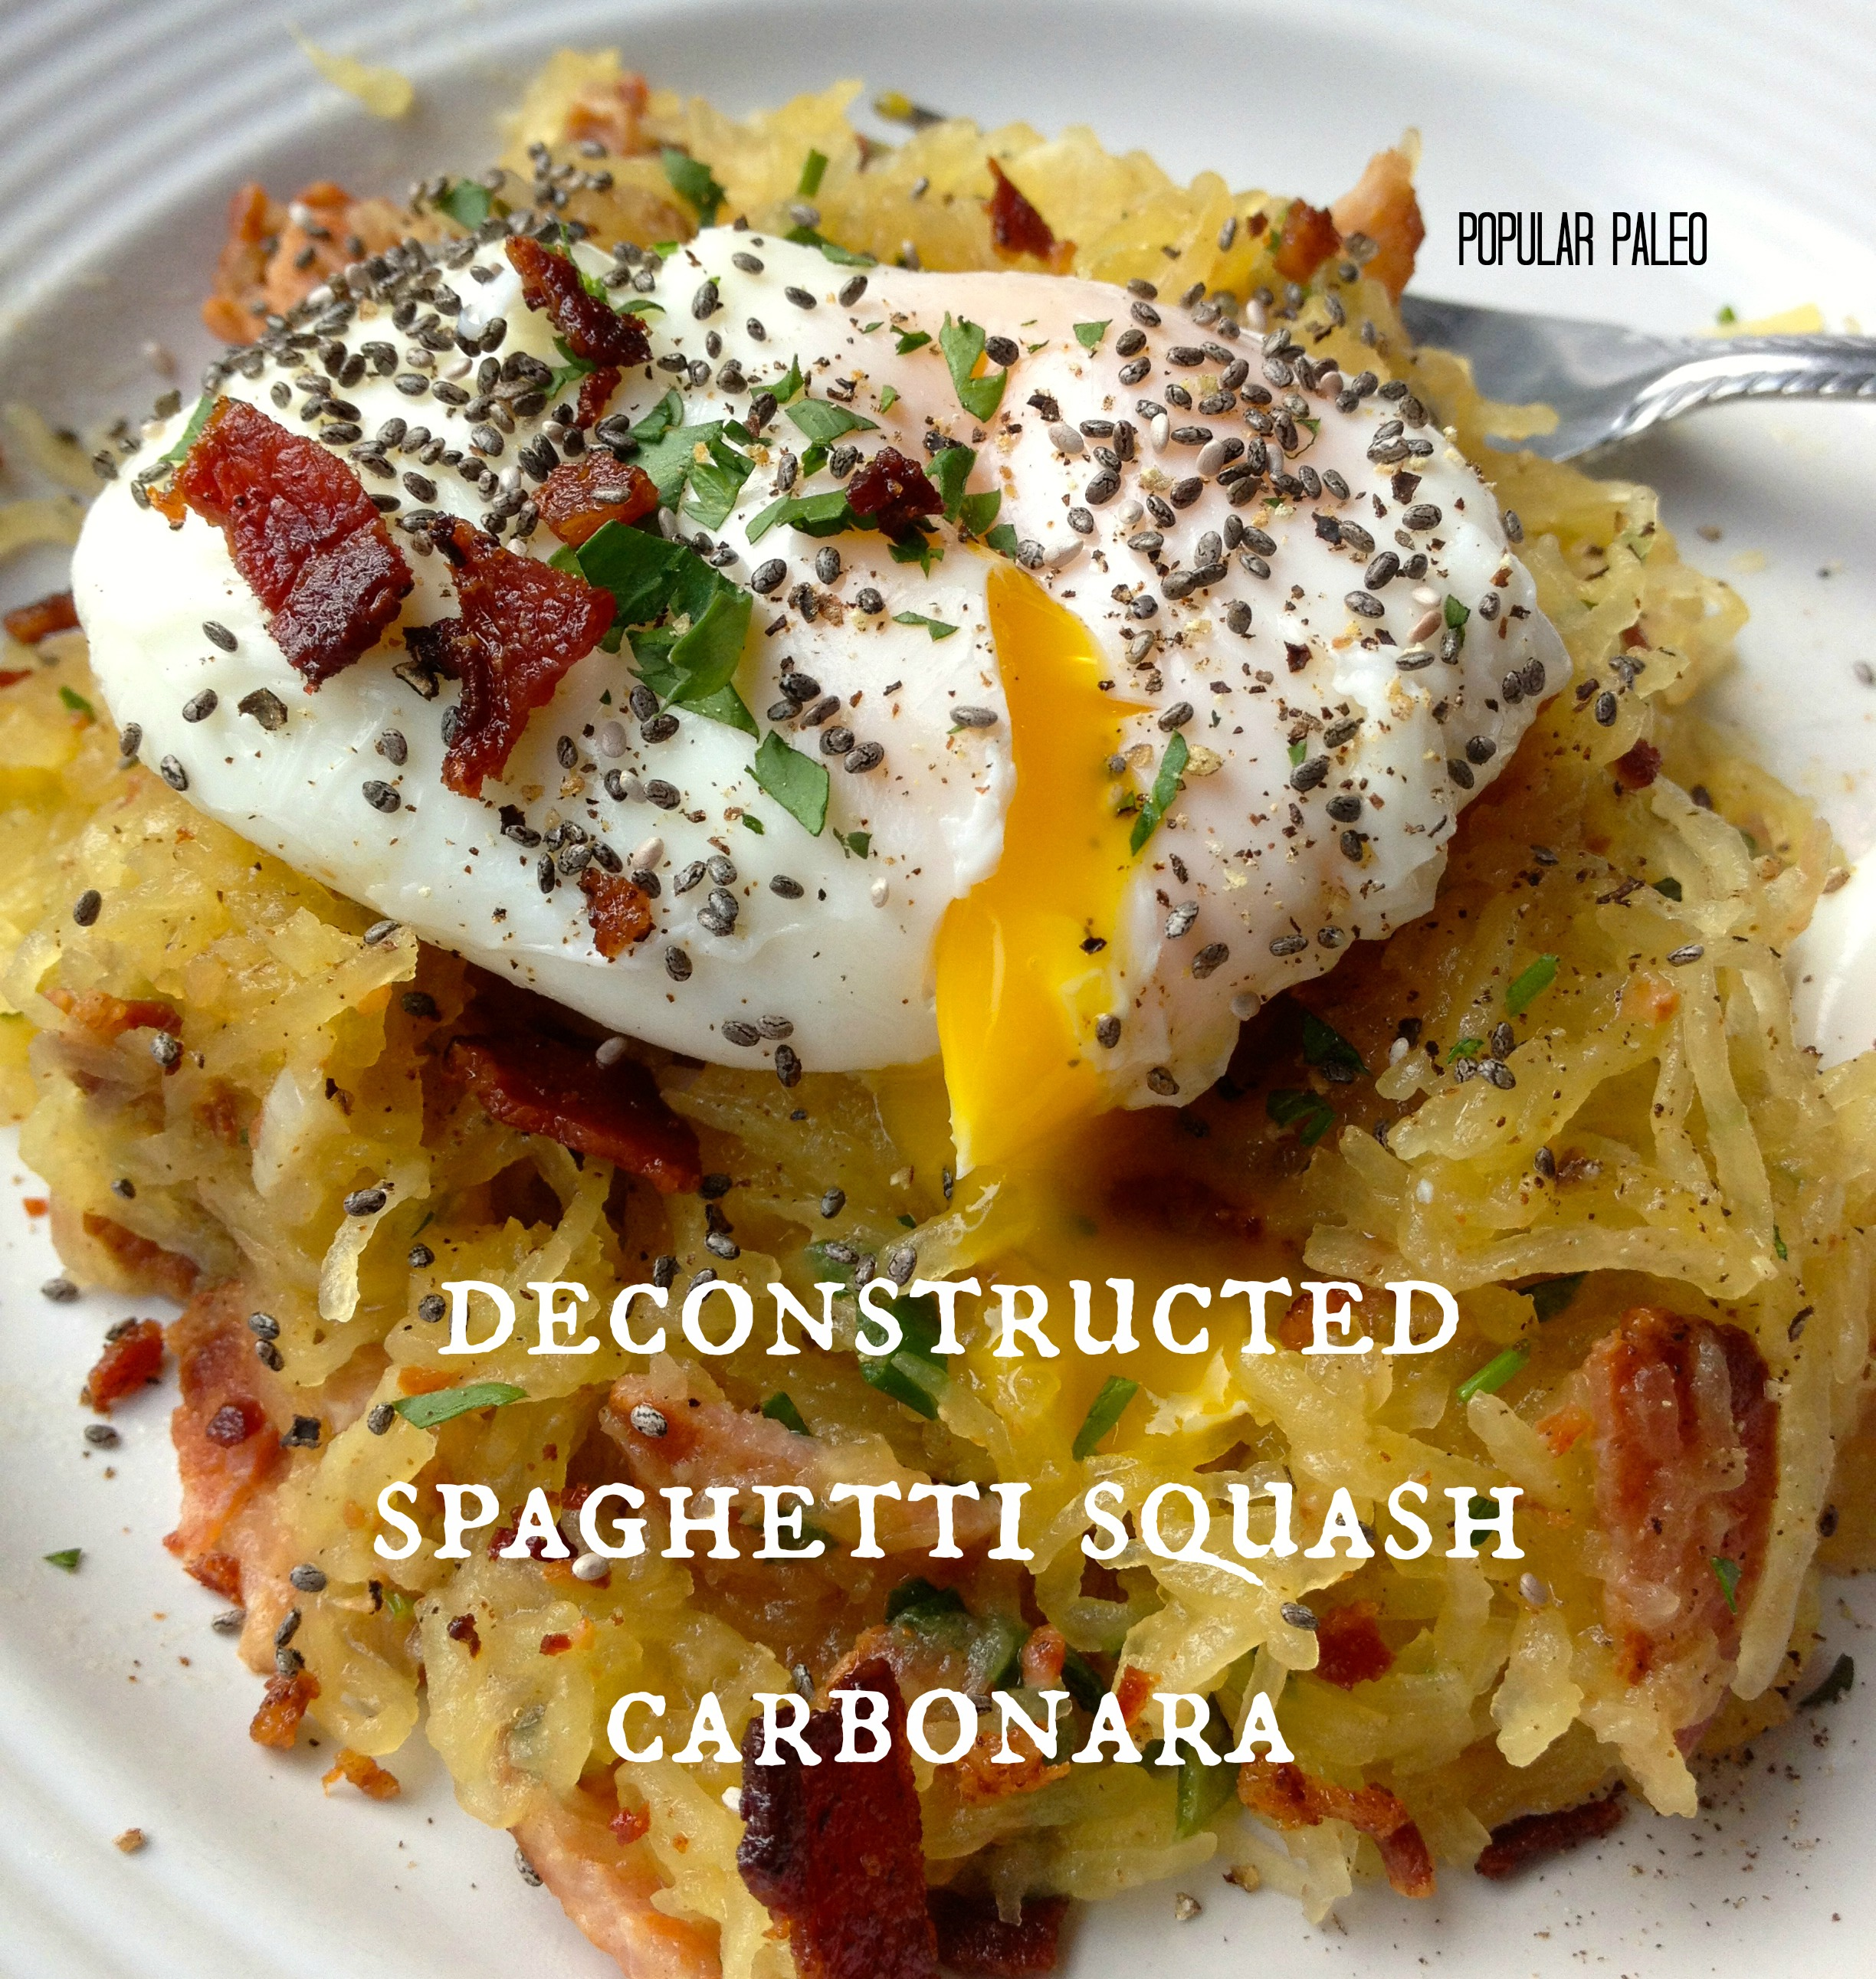 ... to create a silky, rich sauce for your Paleo Carbonara and dig in